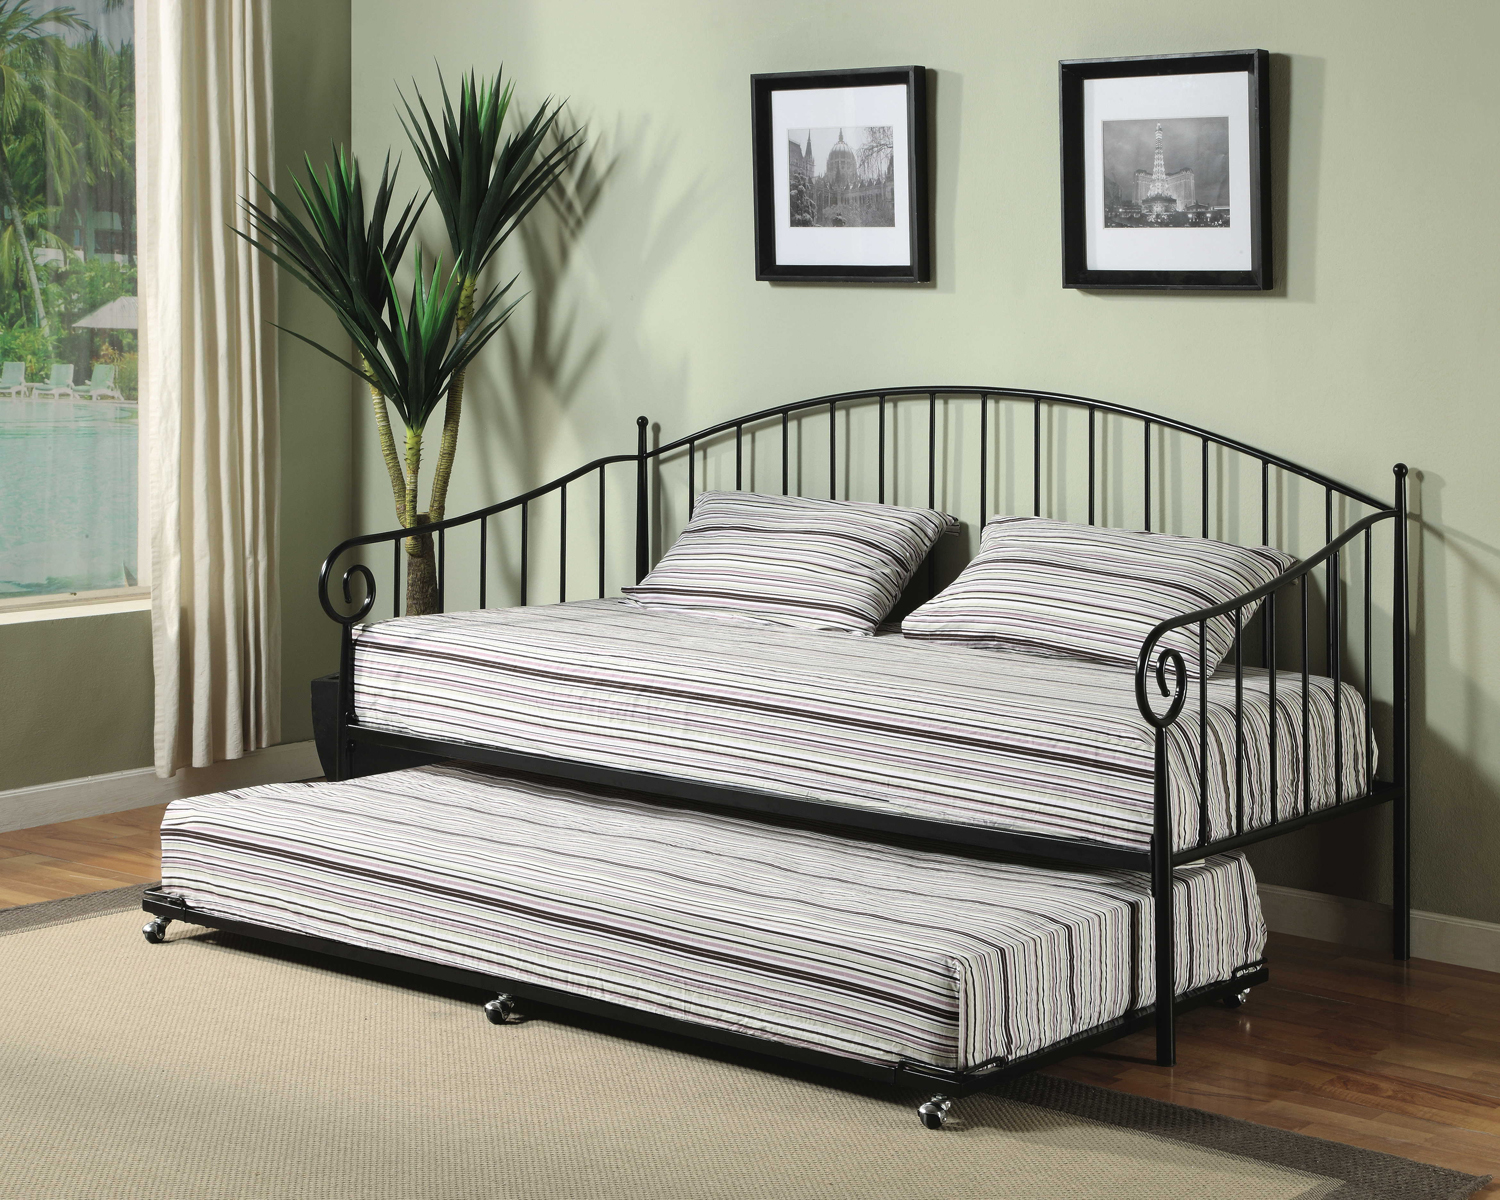 Queen Size Daybed Frame With Metal Frame And Double Stripped Bed And Pillow  Plus Rug On